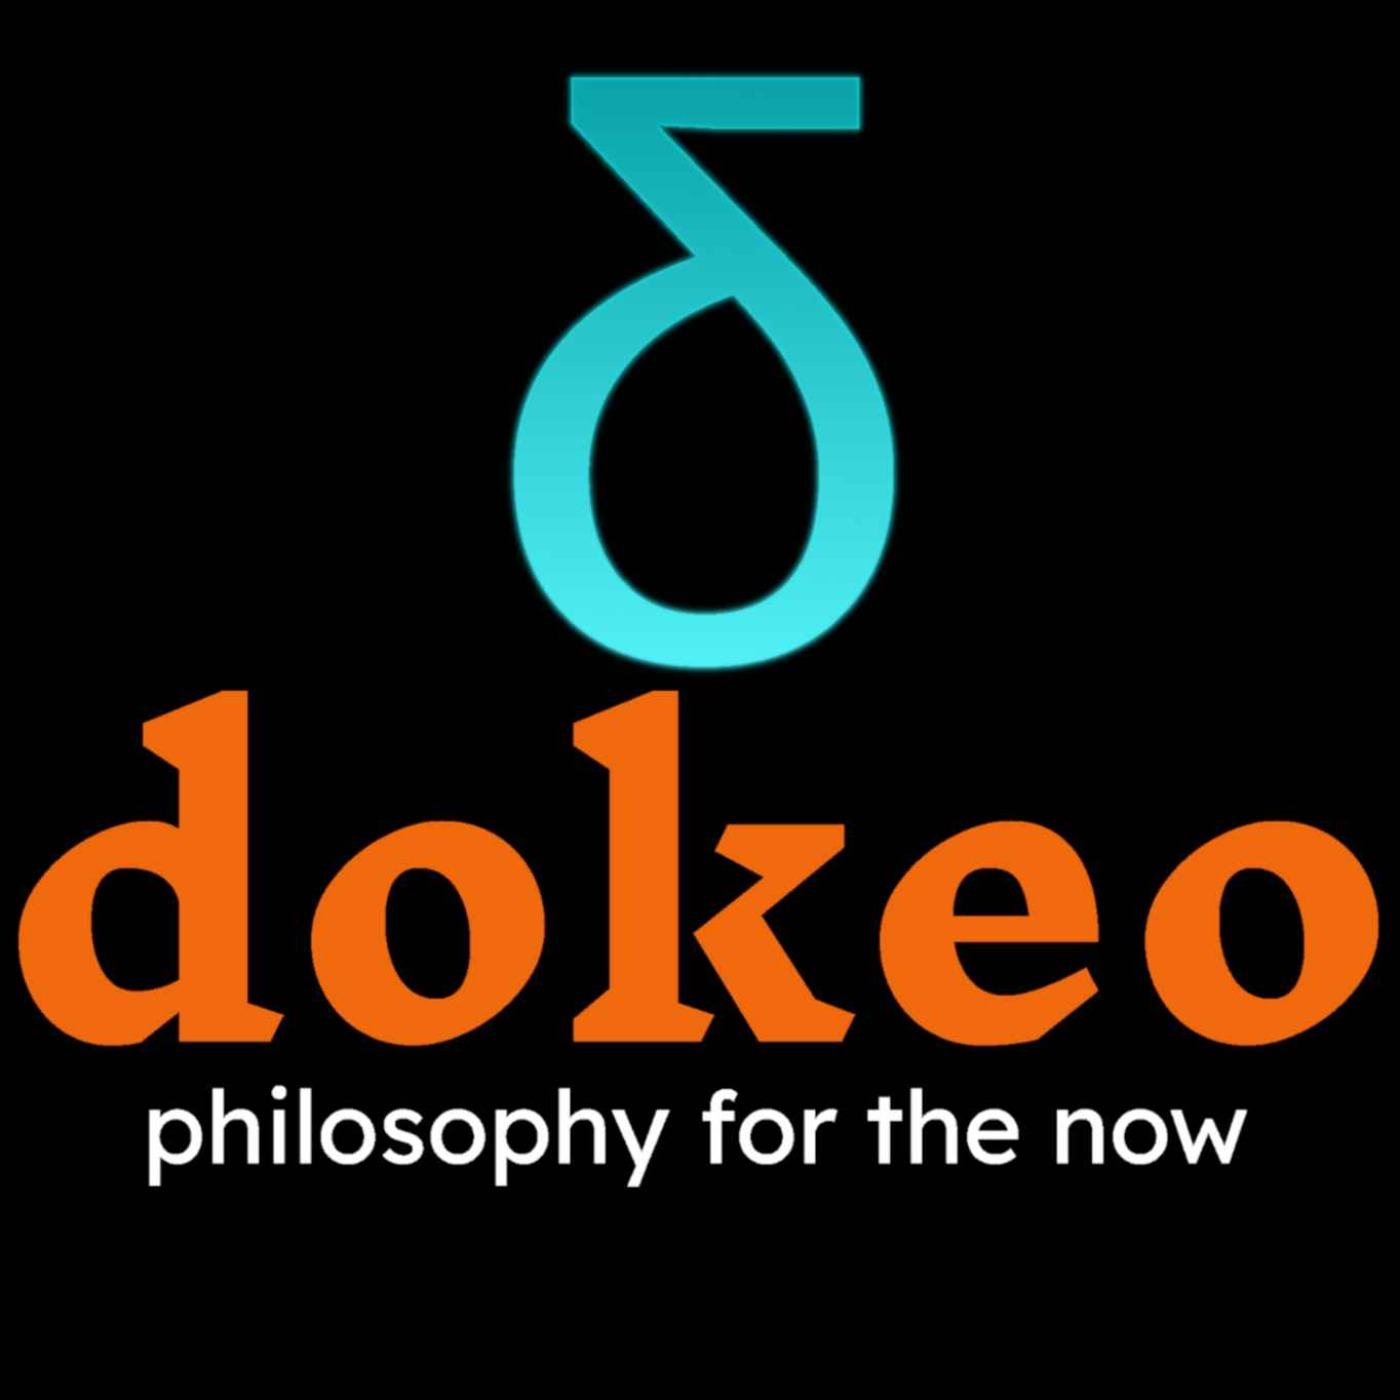 Introduction to the δ dokeo podcast